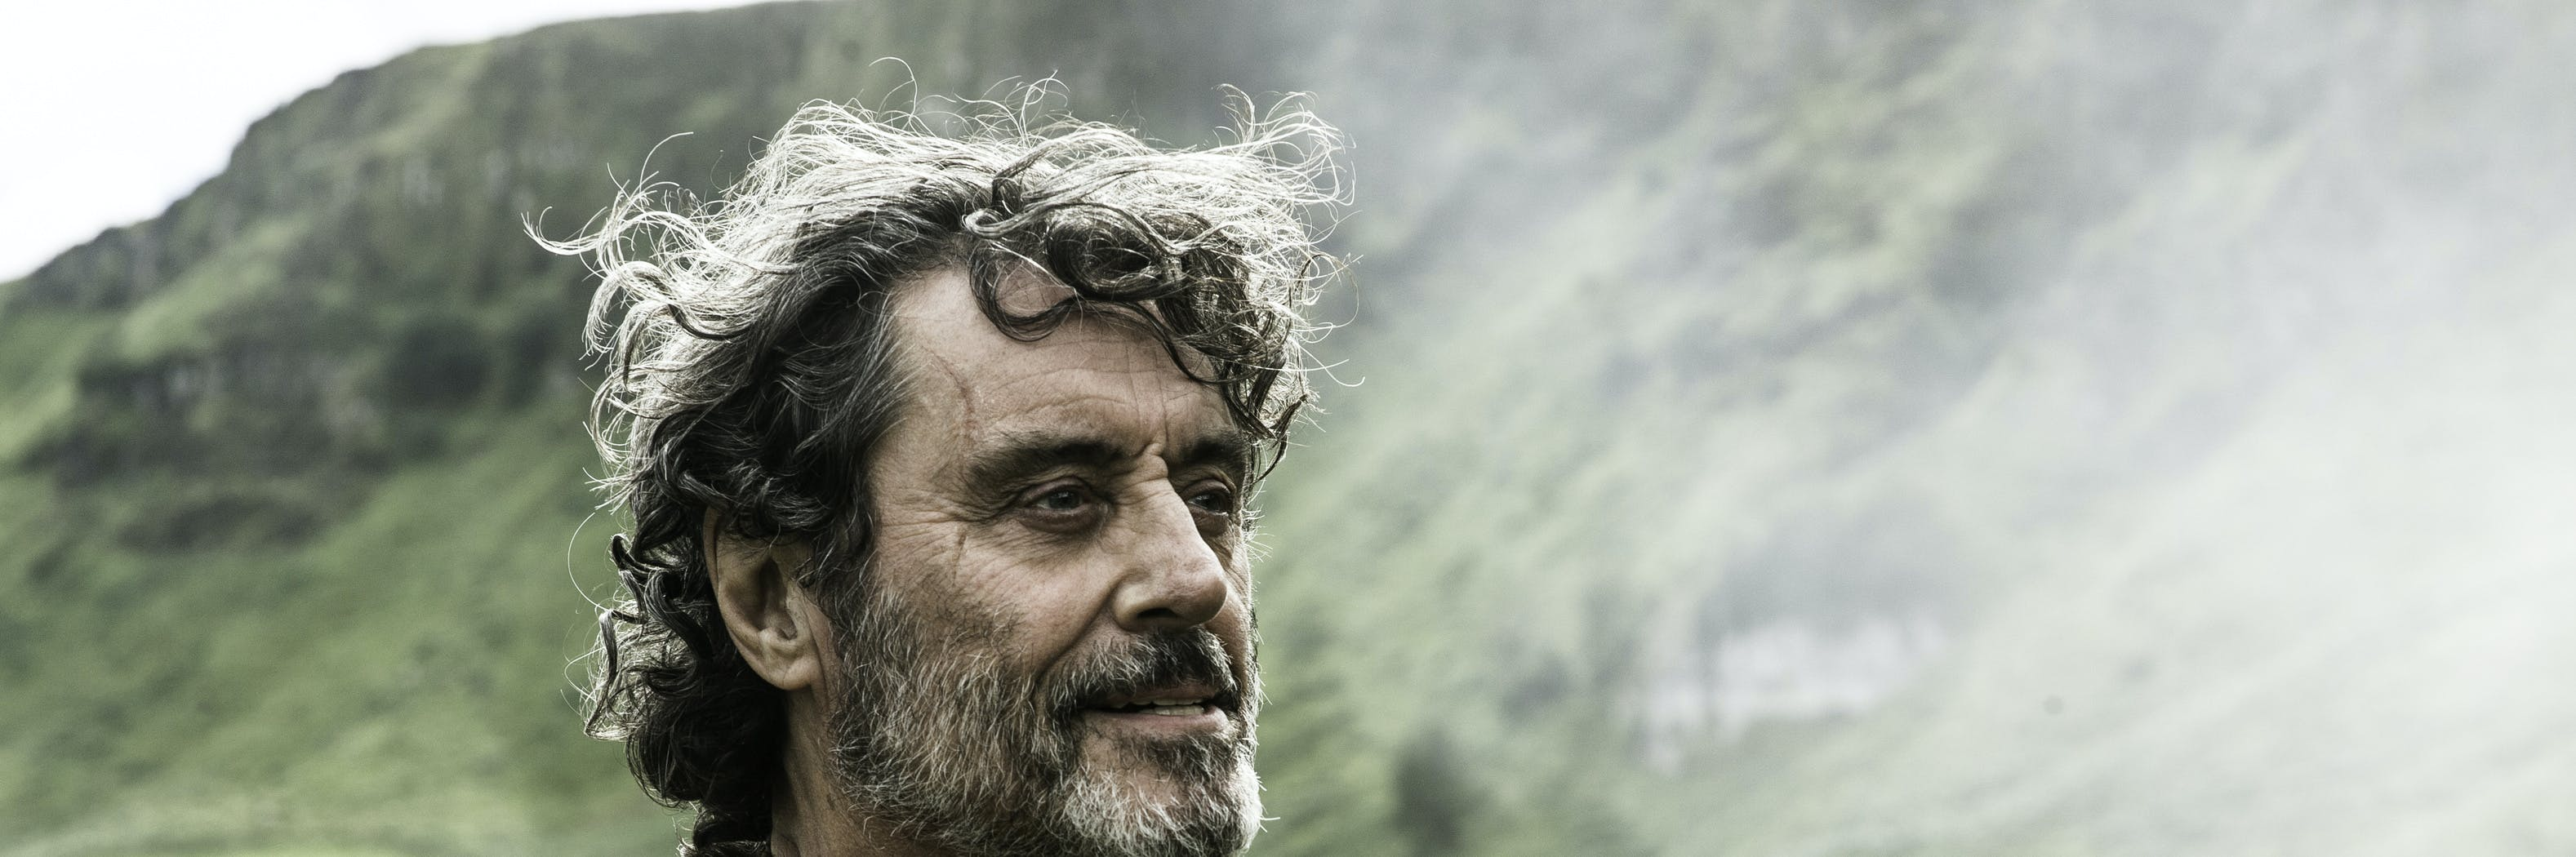 Ian McShane brings back The Hound in 'Game of Thrones'